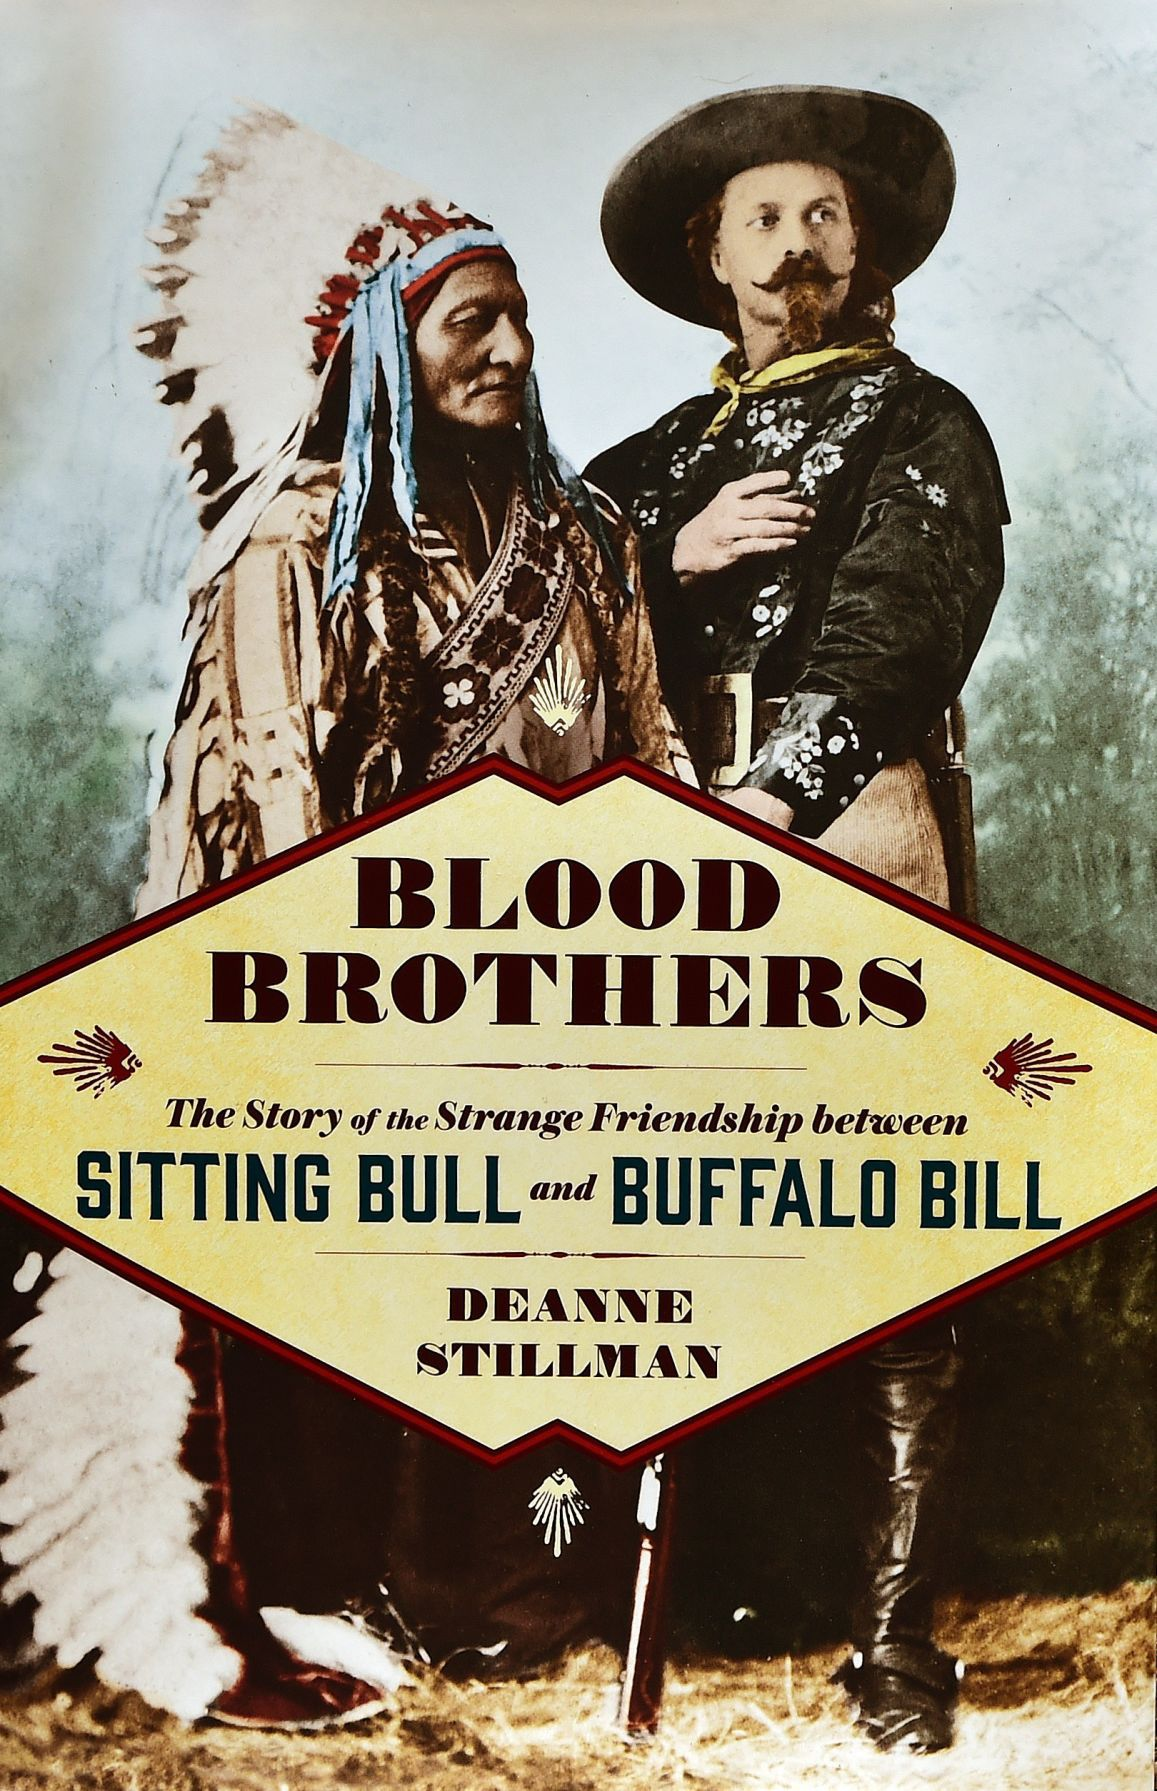 'Blood Brothers: The Story of the Strange Friendship between Sitting Bull and Buffalo Bill'